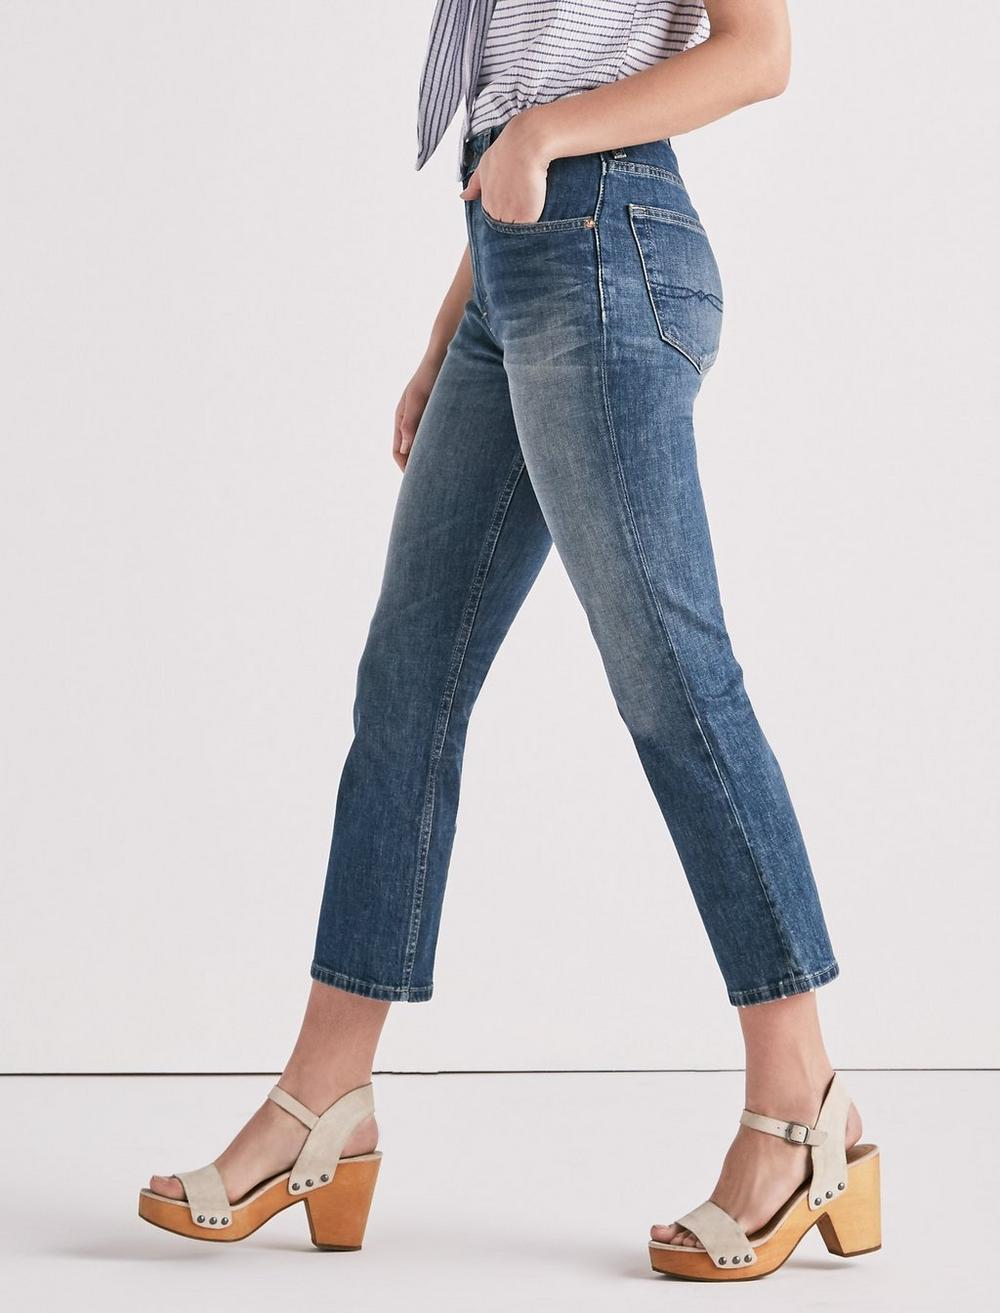 LUCKY PINS HIGH RISE CROPPED JEAN, image 1